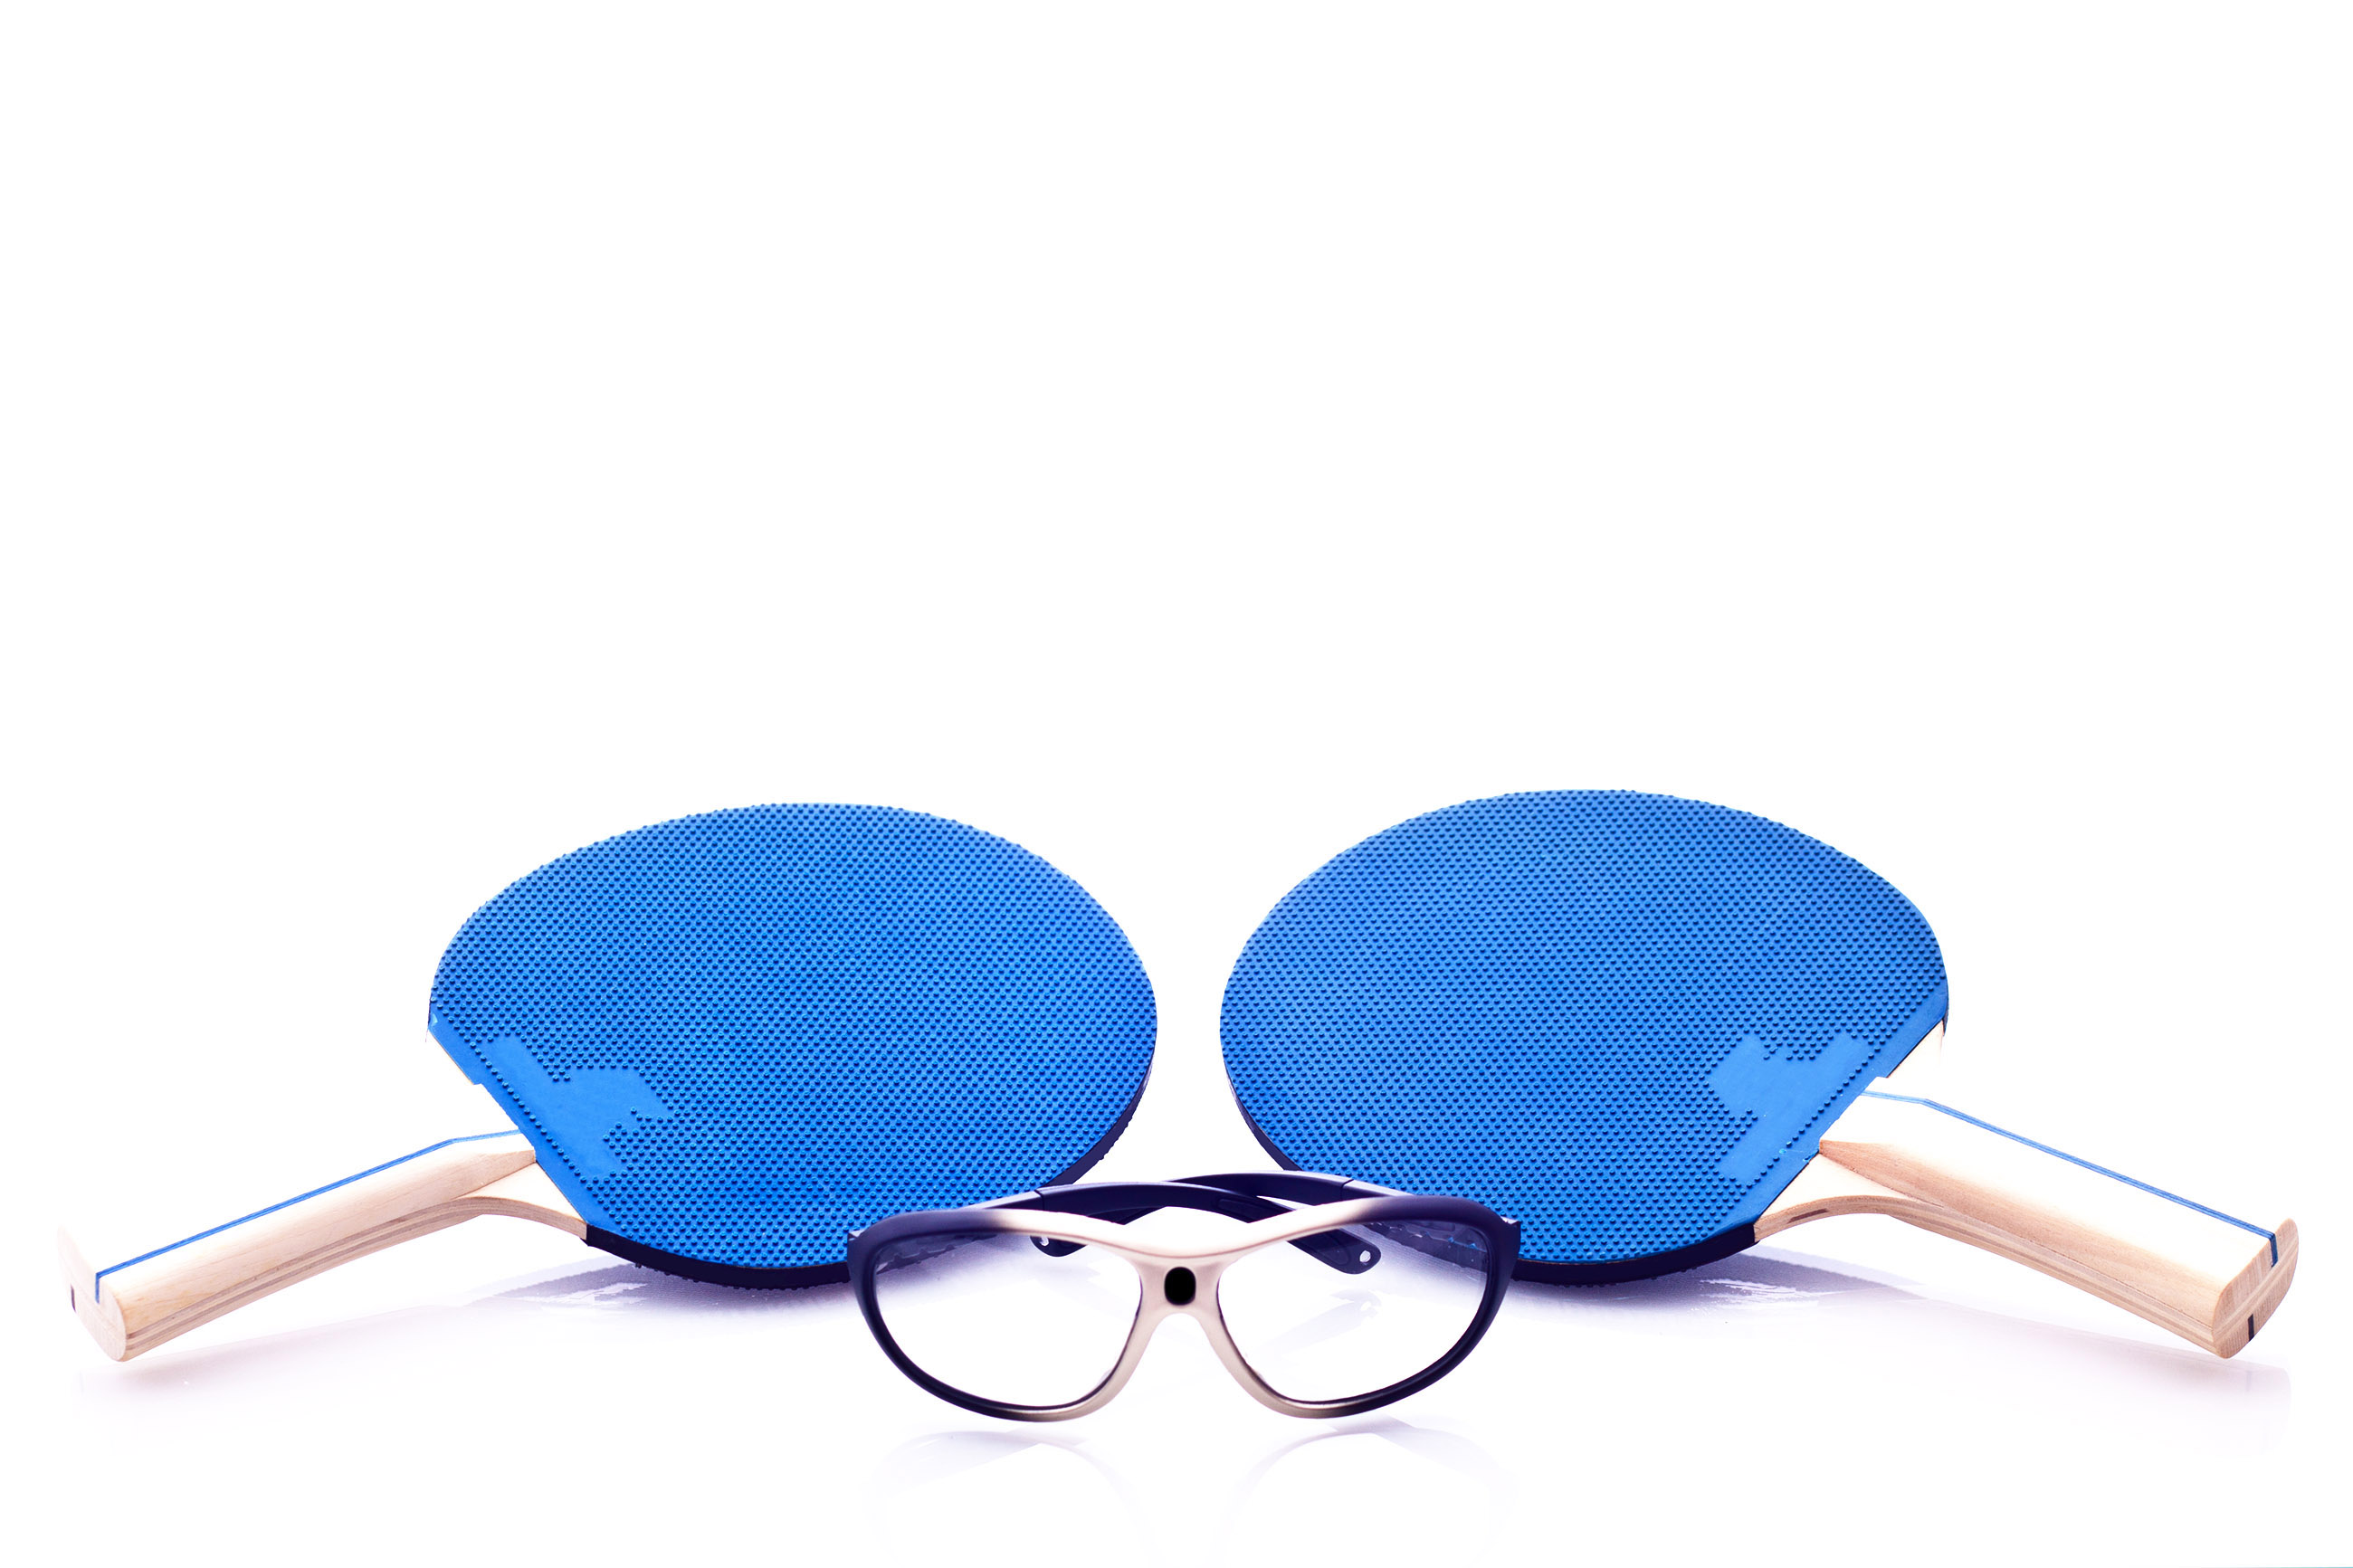 Ping pong rackets, Activity, Match, Trainer, Sport, HQ Photo